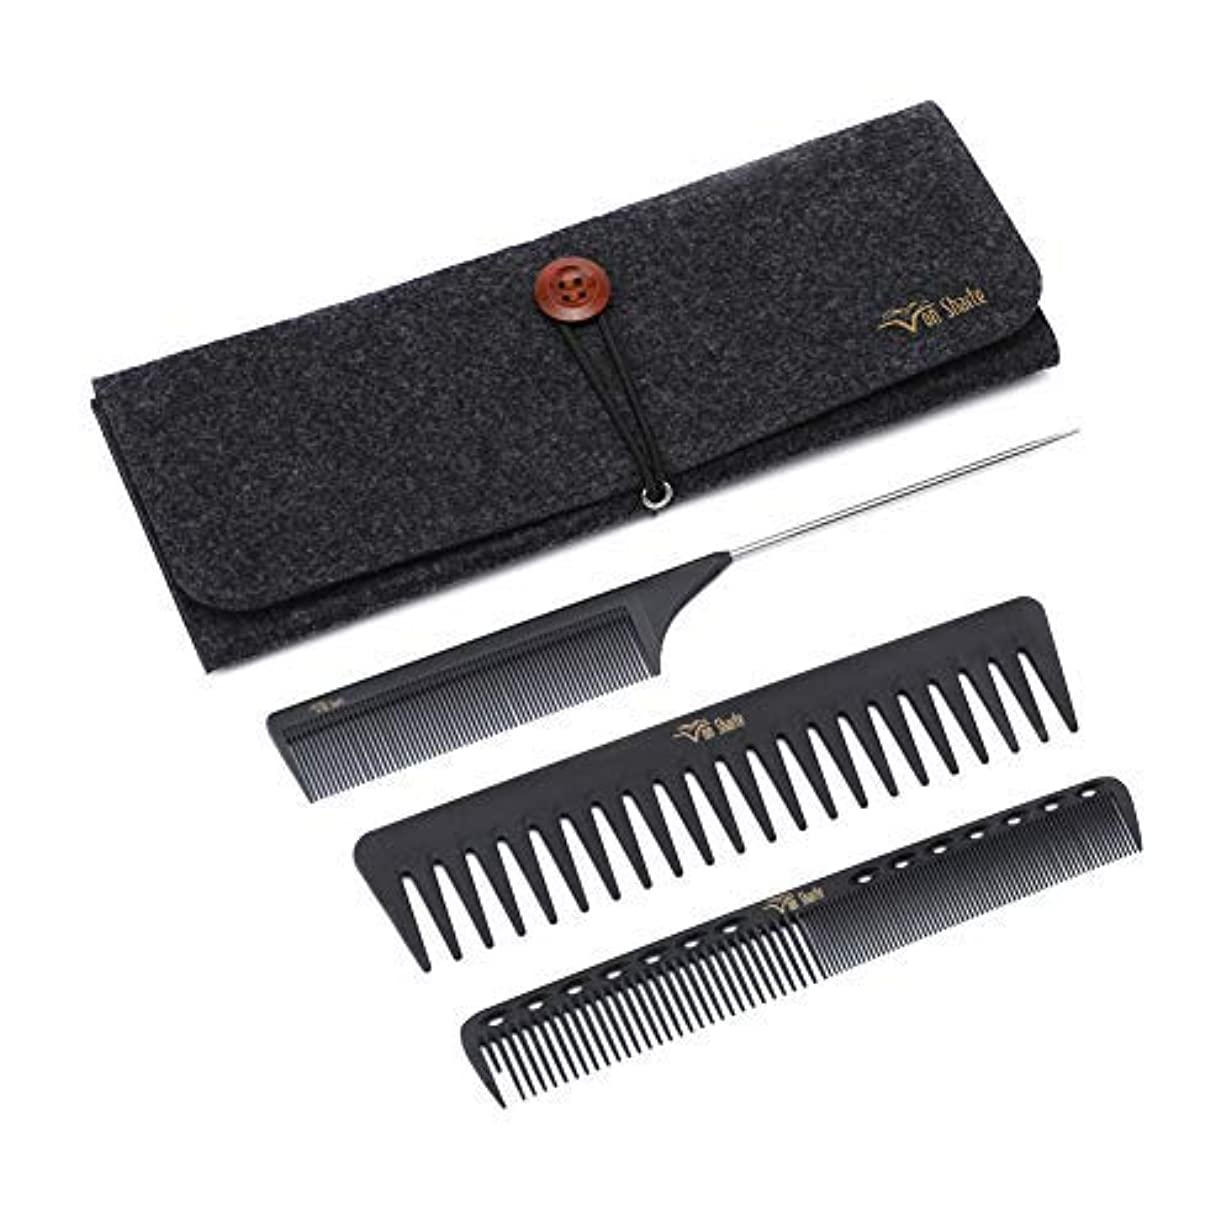 鯨織る純度Styling Comb Set,Hairdresser Barber Comb Cutting Hair Comb Carbon Fiber Wide Tooth Comb Metal Rat Pin Tail Comb...